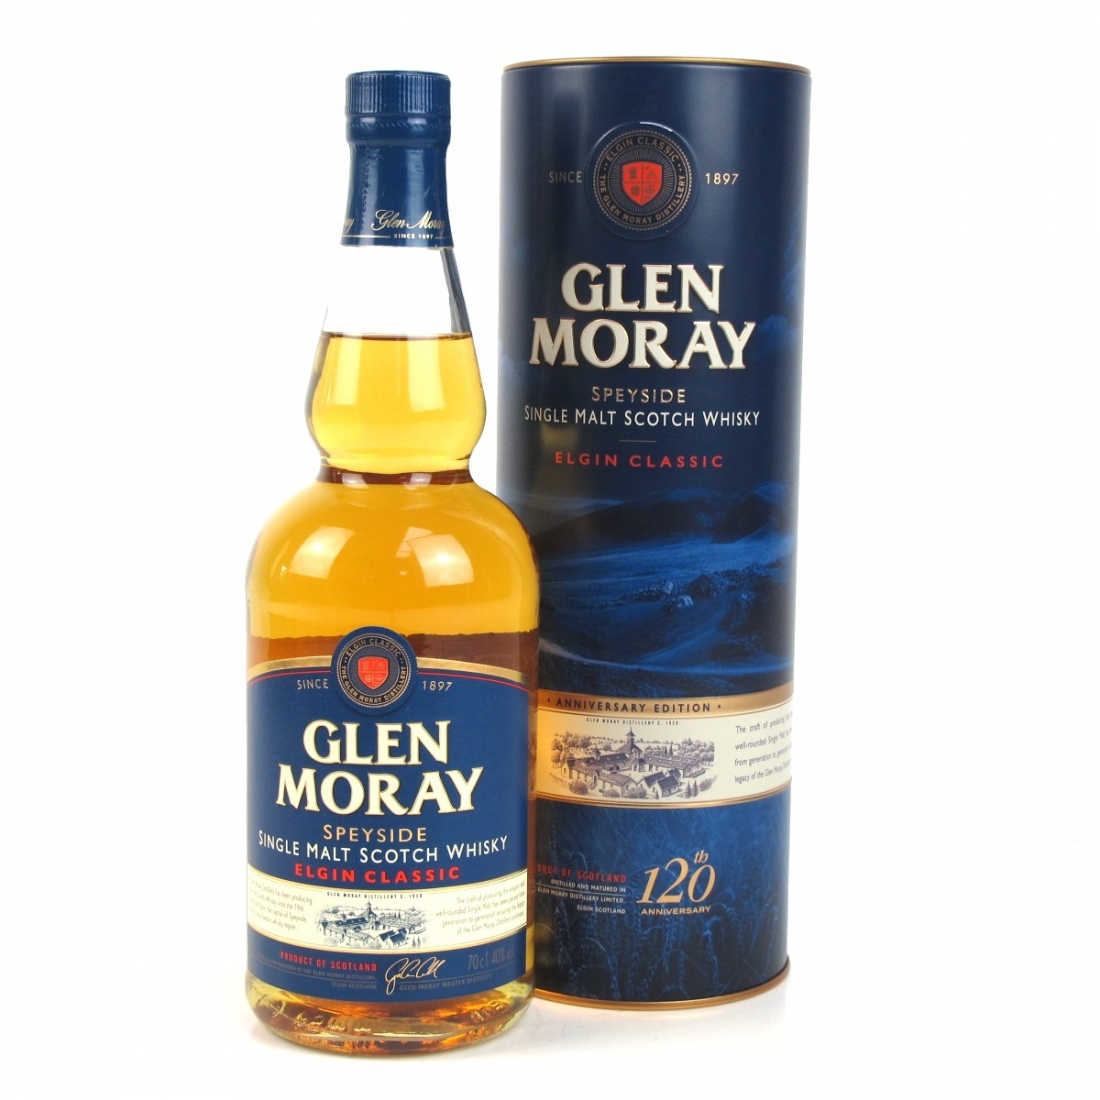 Glen Moray Classic 120th Anniversary